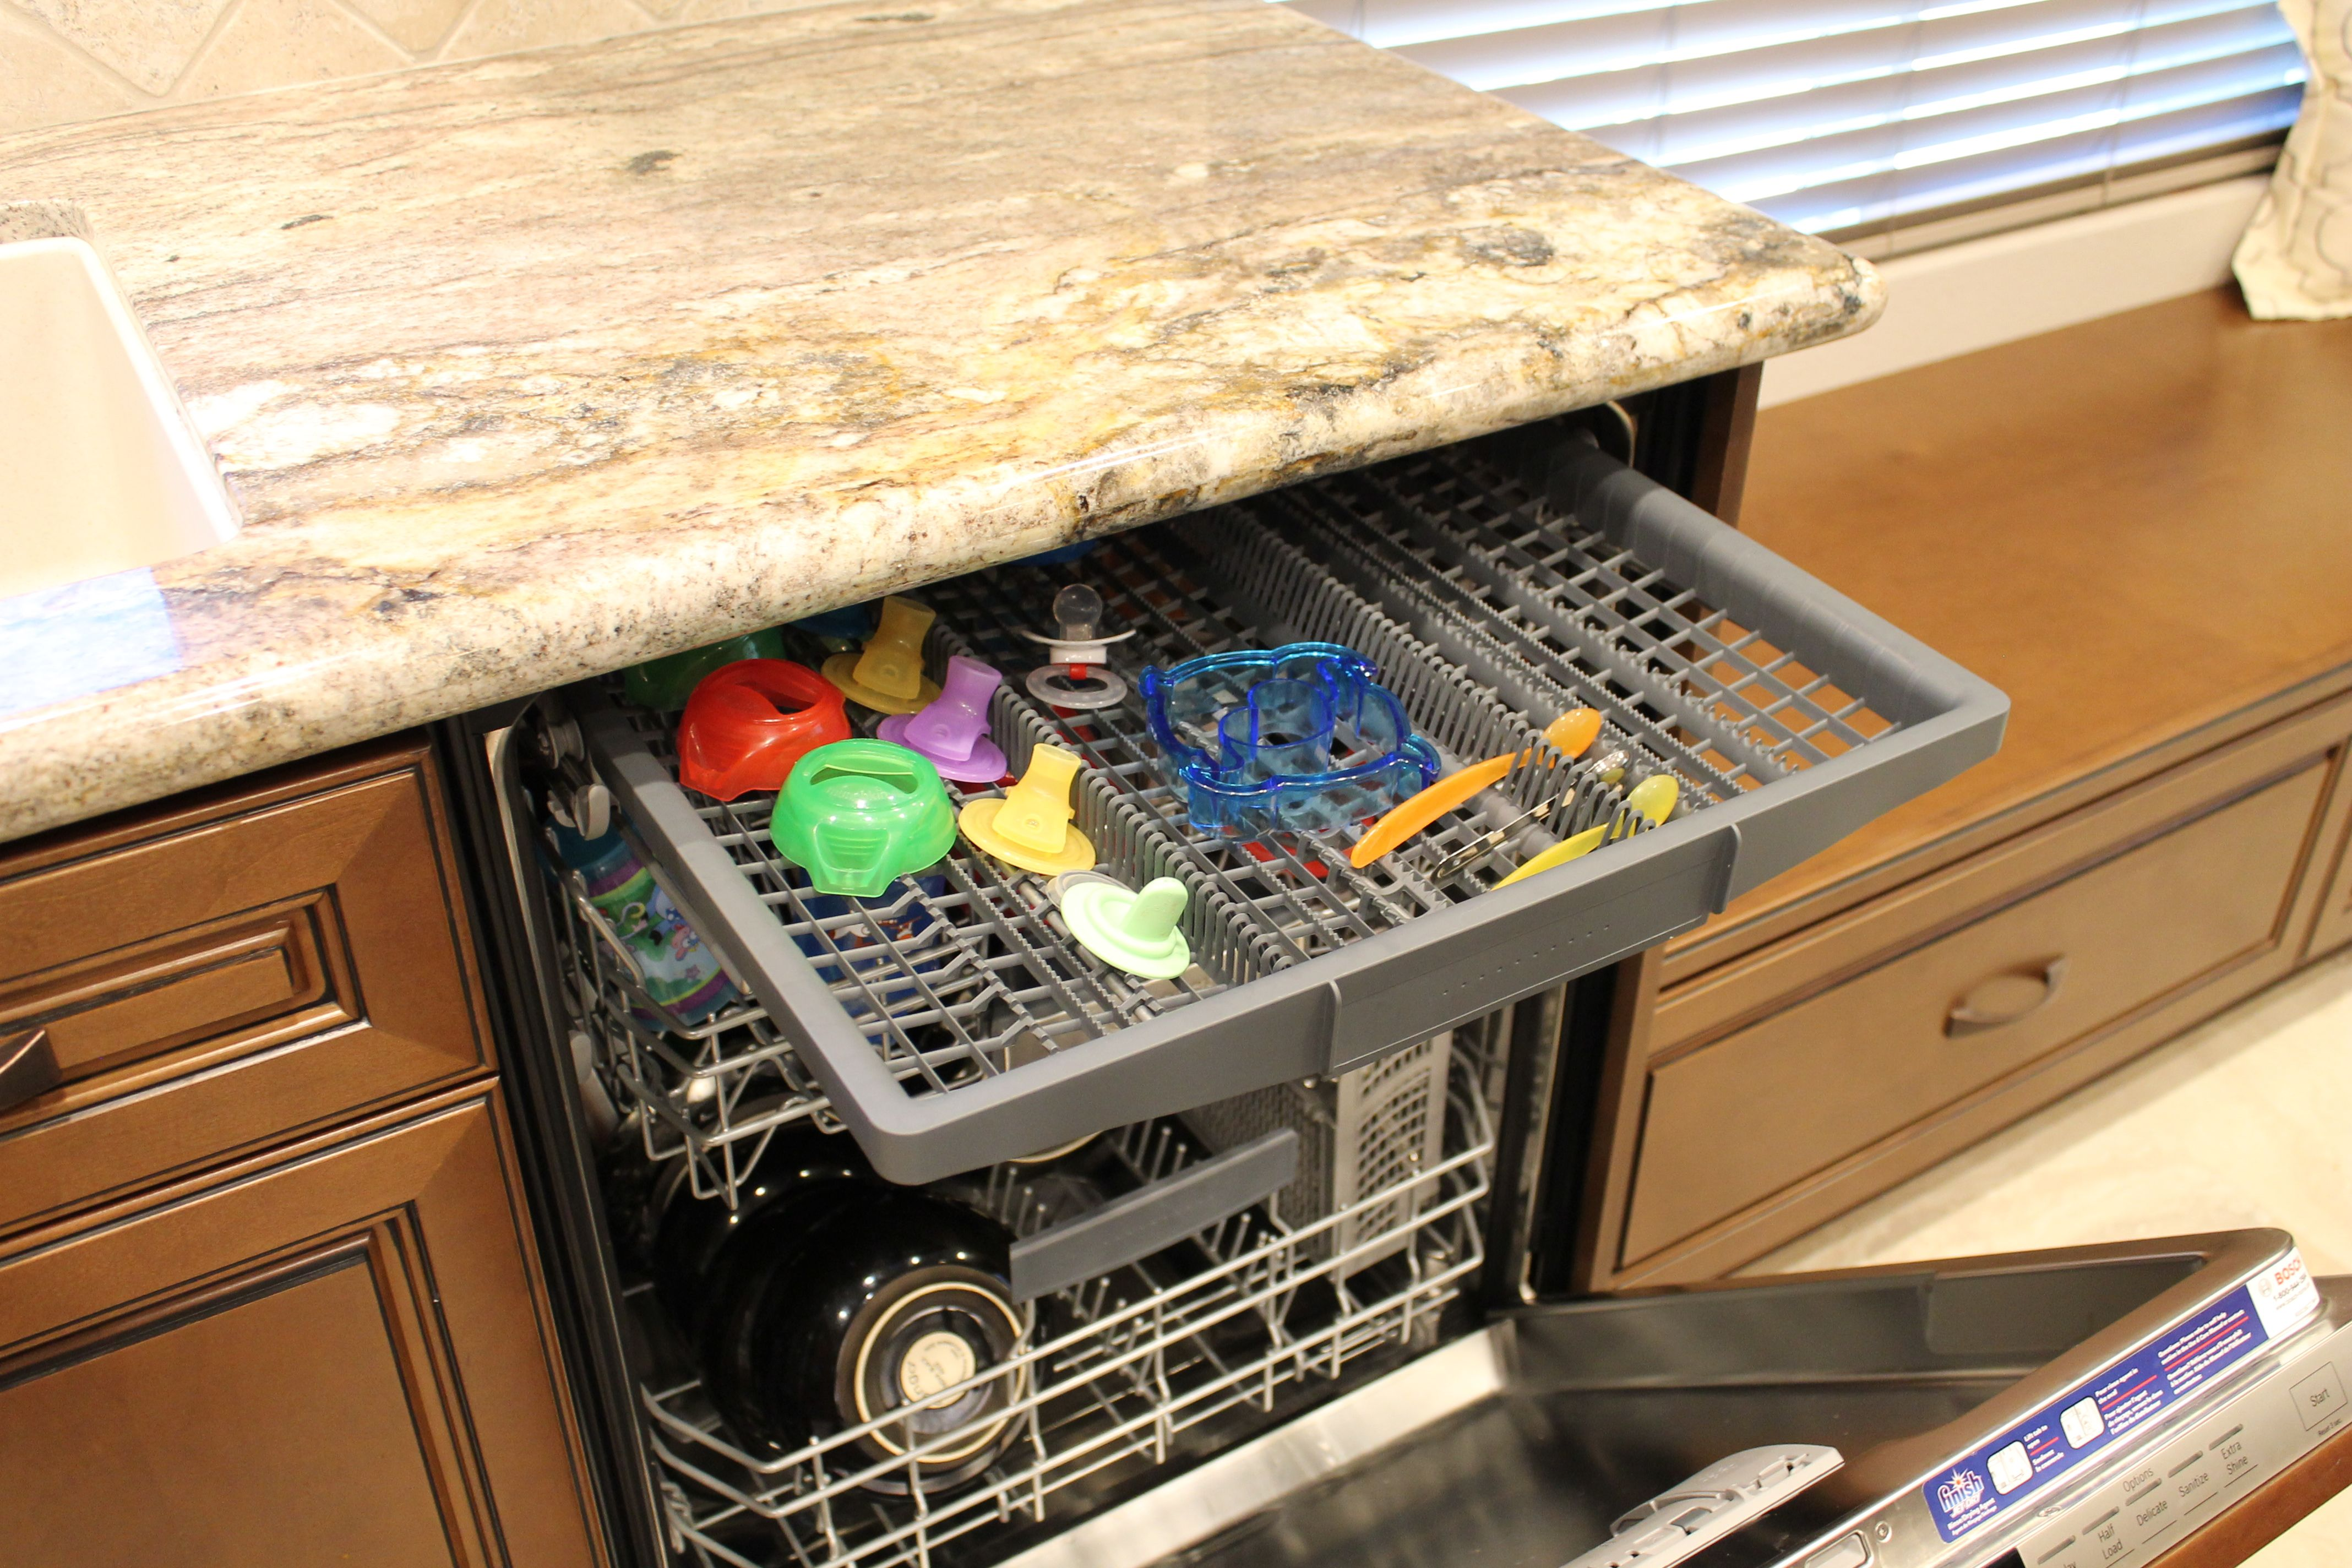 Bosch dishwasher 800 series panel ready dwith 3rd rack